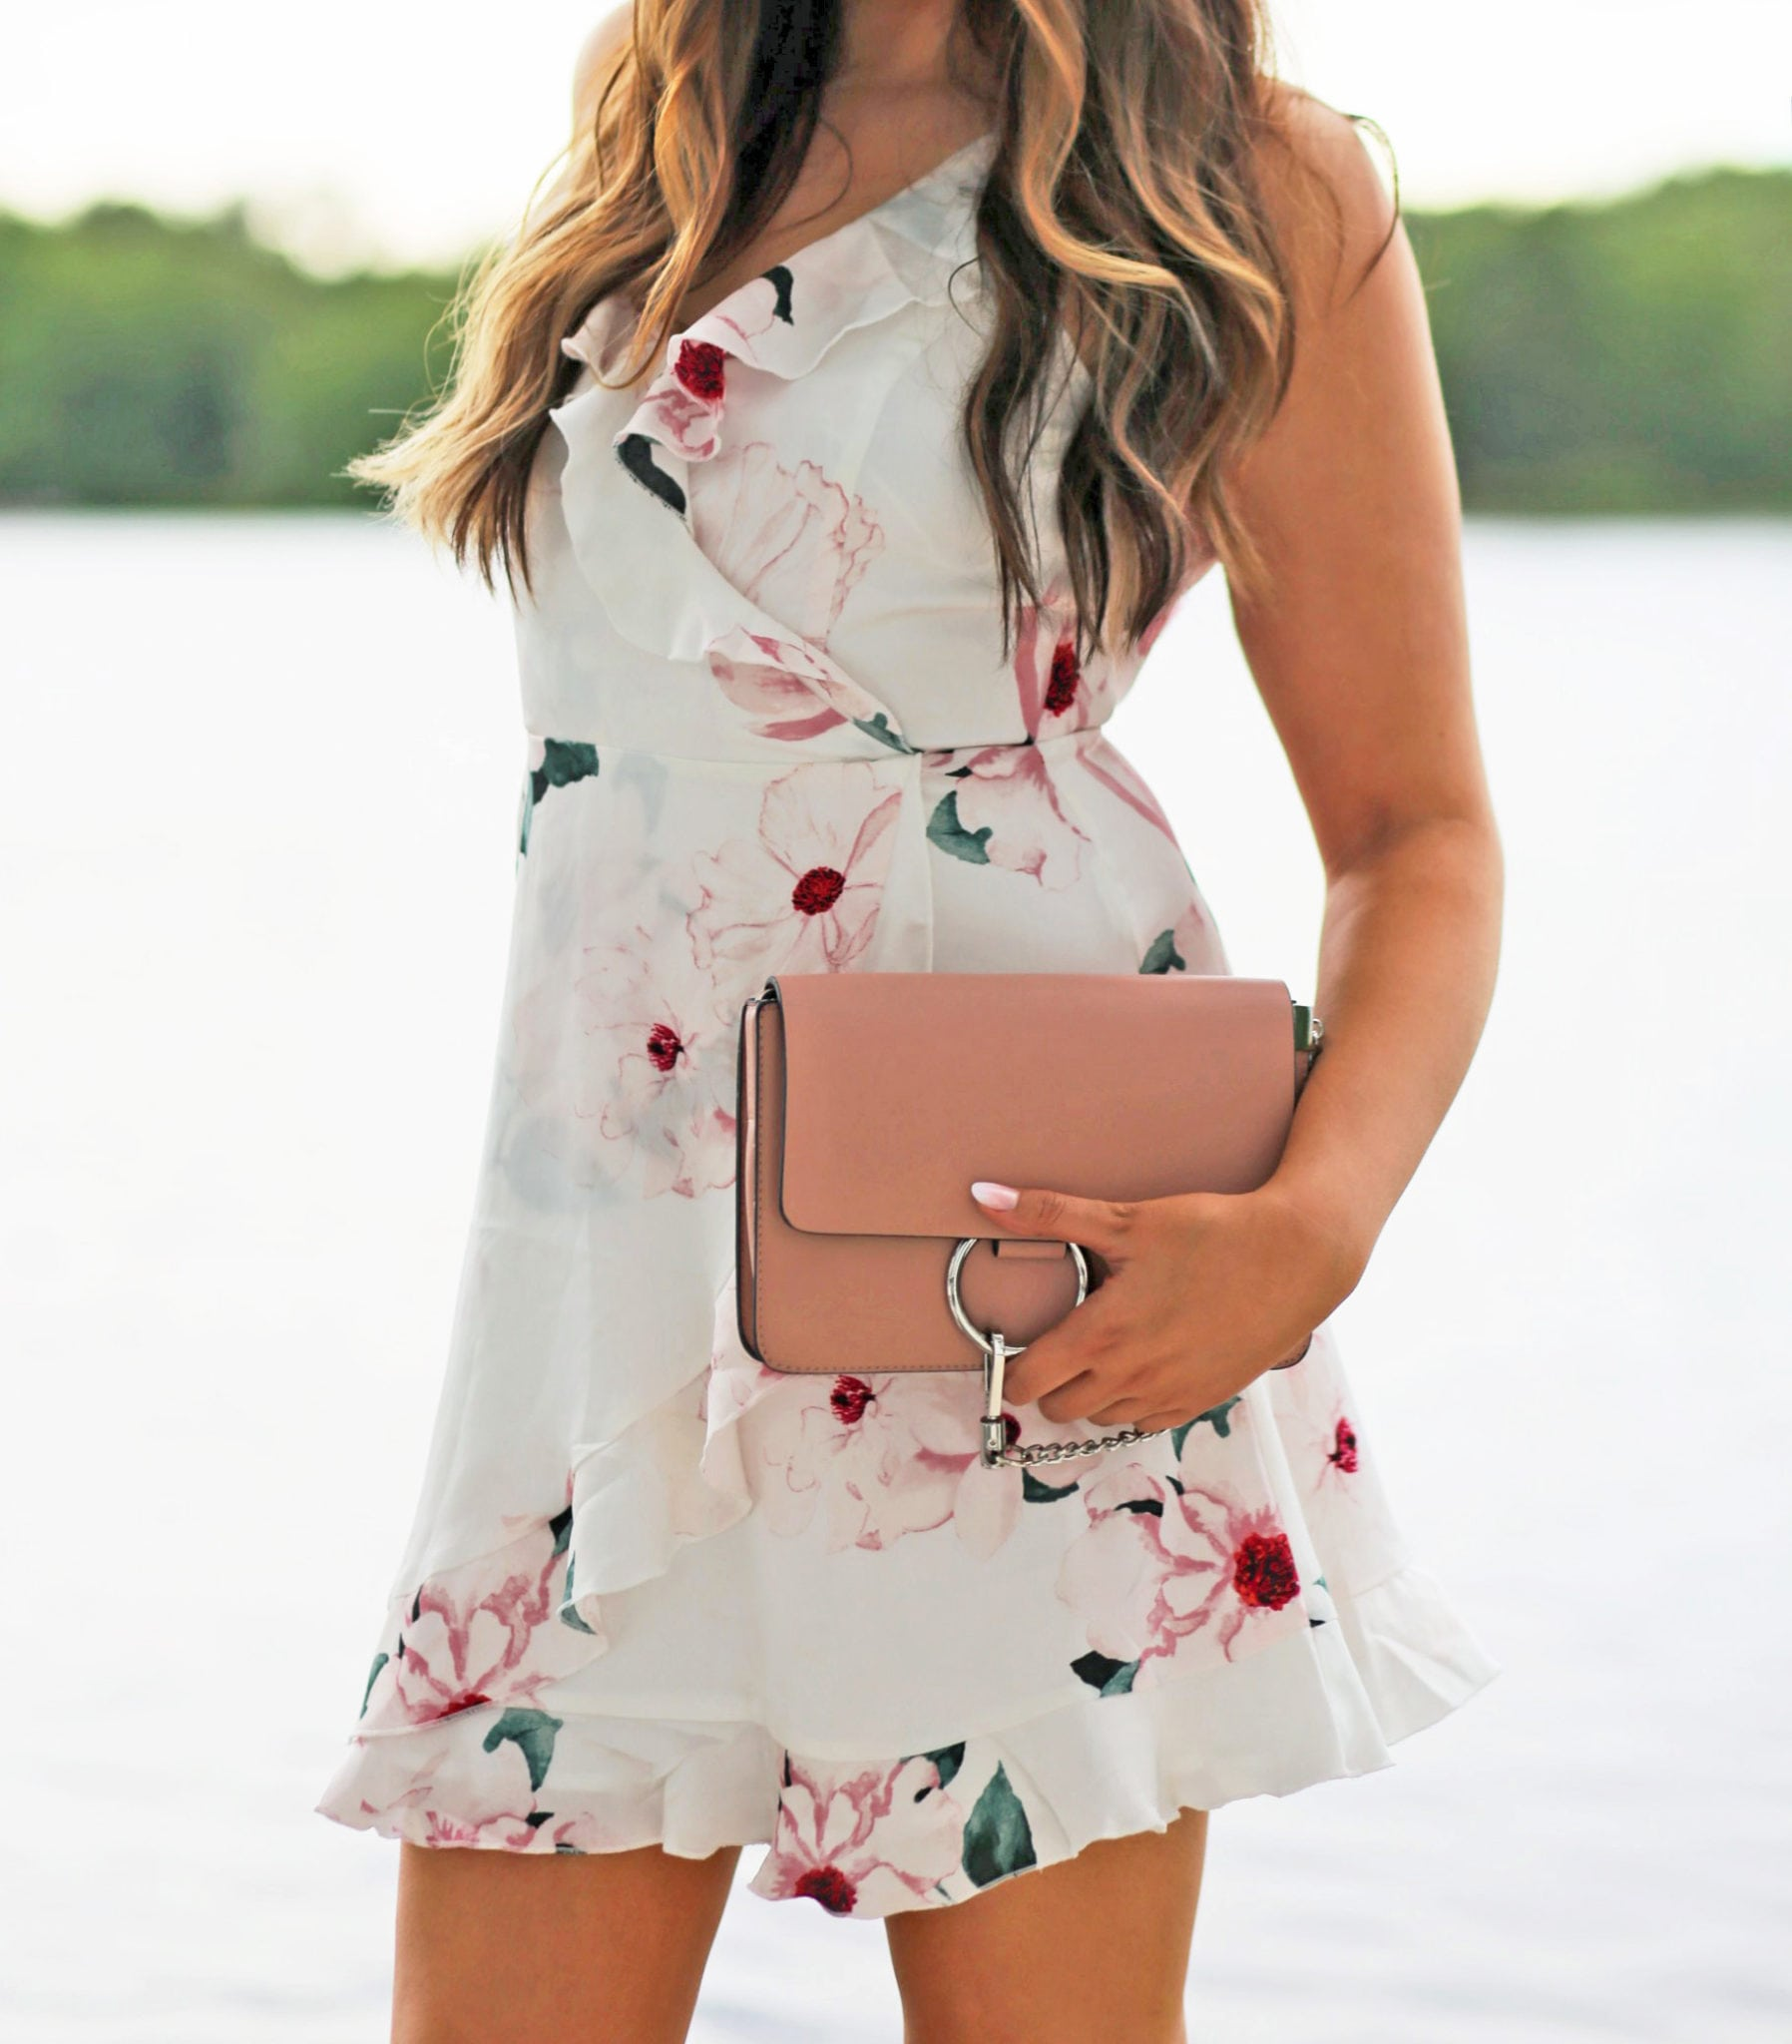 floral ruffle dress   summer outfit   beauty blogger Mash Elle   floral outfit   summer dress   sundress   pool dress   summer party   vacation dress  pink clutch   chloe faye dupe bag